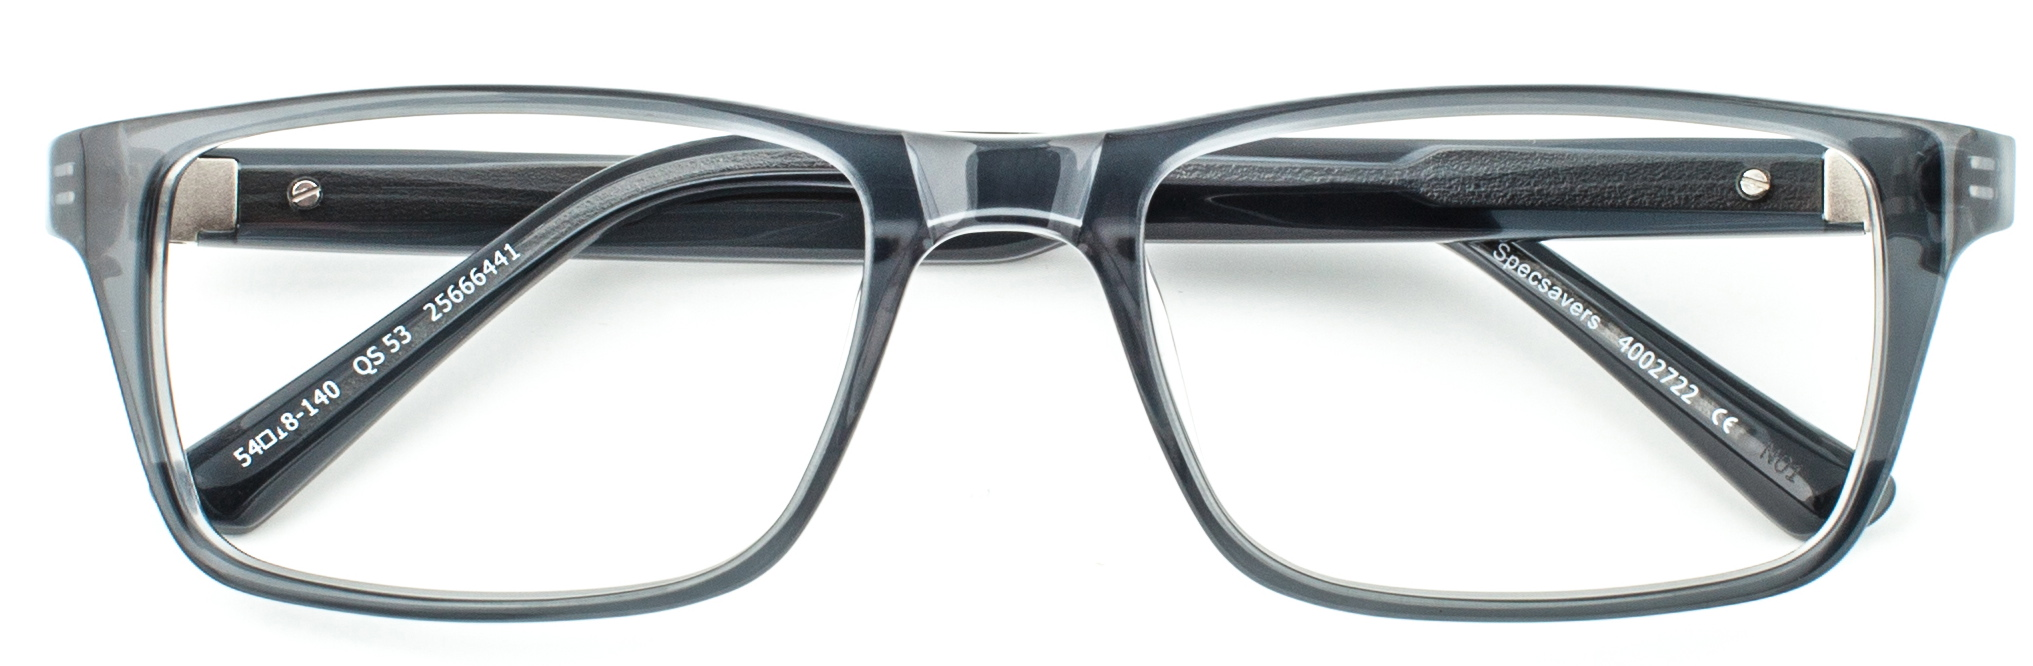 Half Frame Reading Glasses Specsavers : New glasses? Specsavers SS14 fashion frames launches So ...